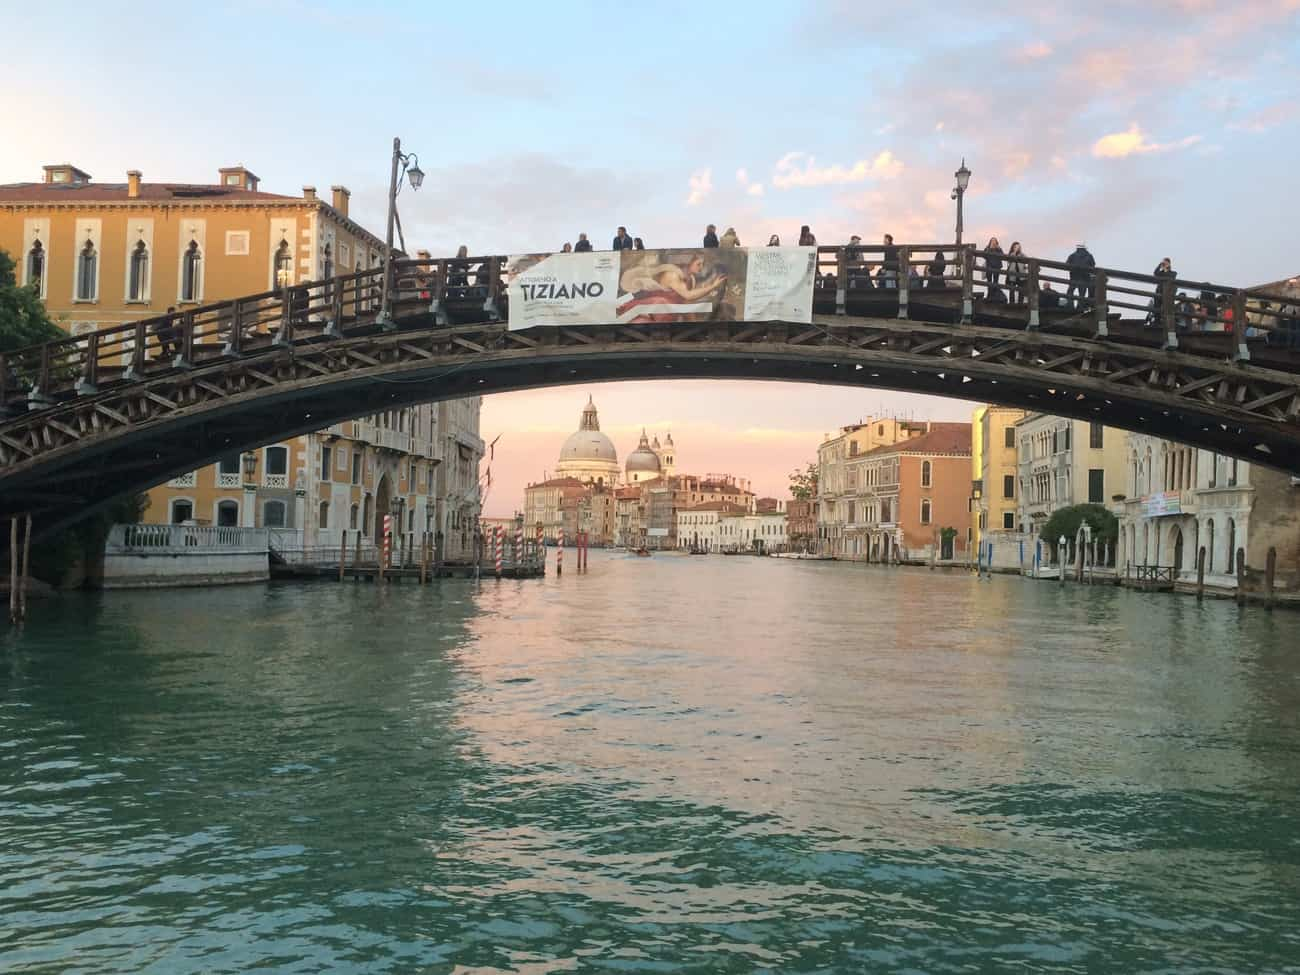 Venice Accademia Bridge at sunset